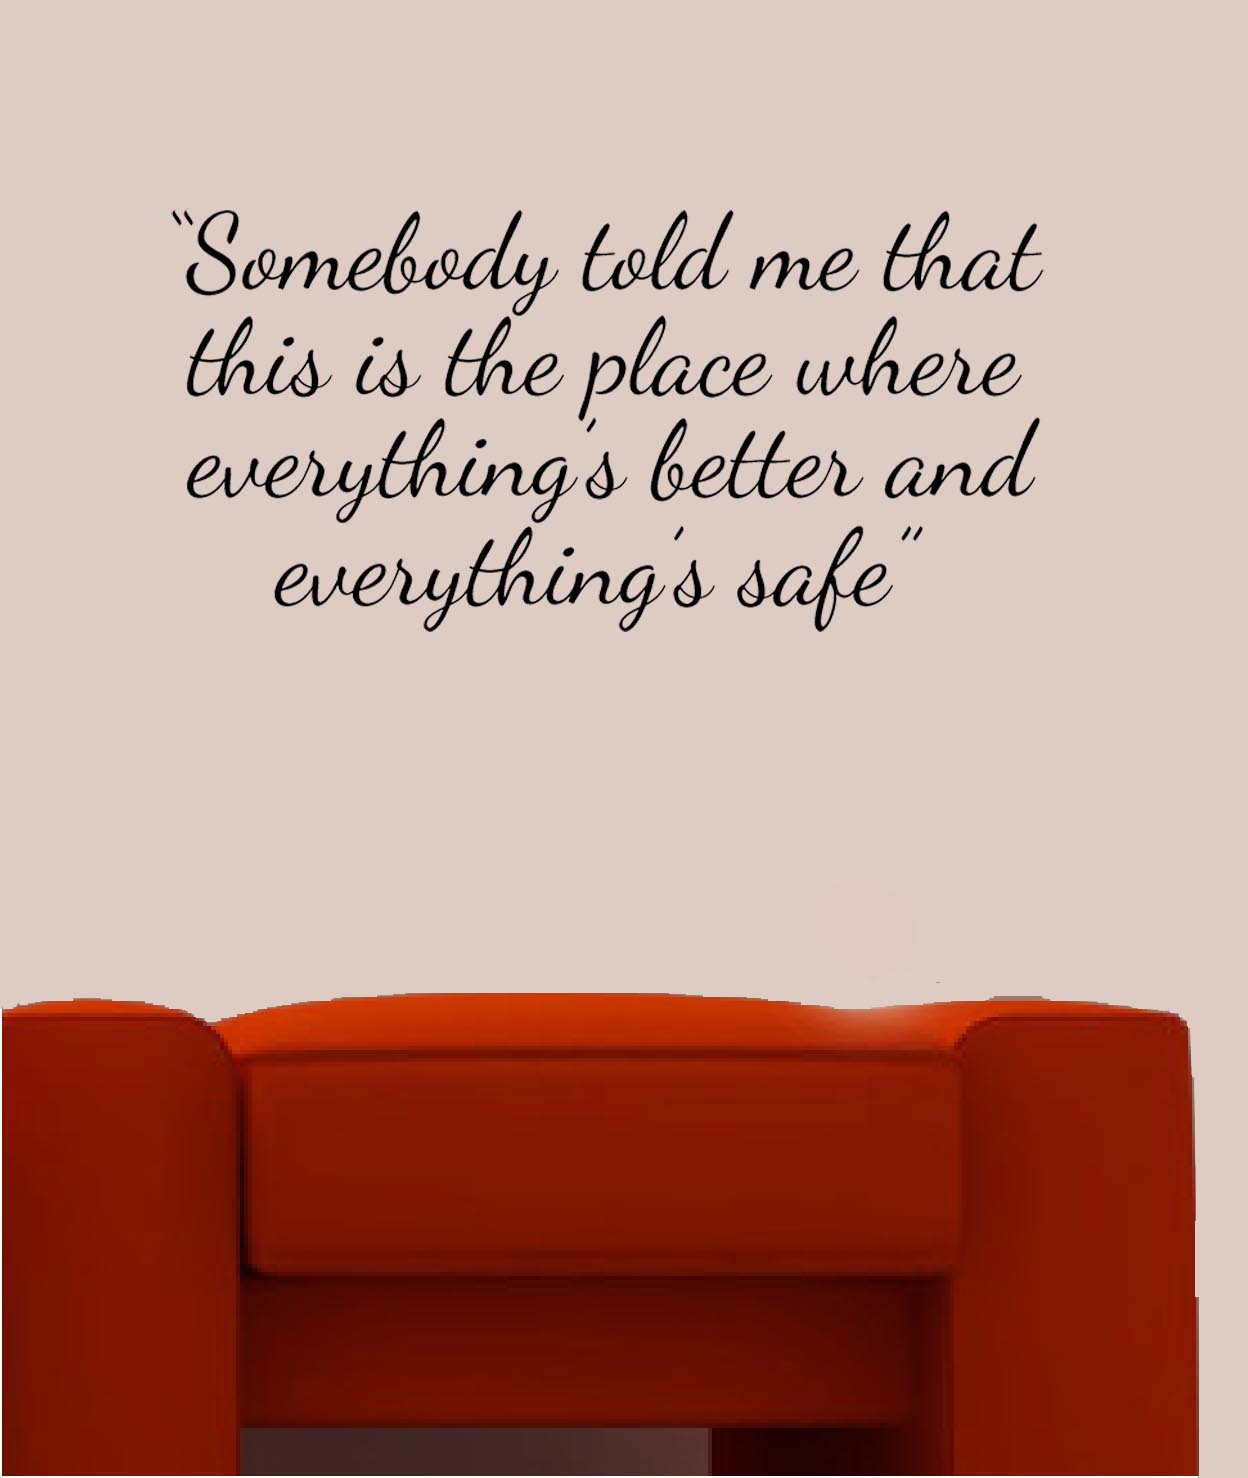 One Tree Hill Quotes About Friendship One Tree Hill Quotes  Aol Image Search Results